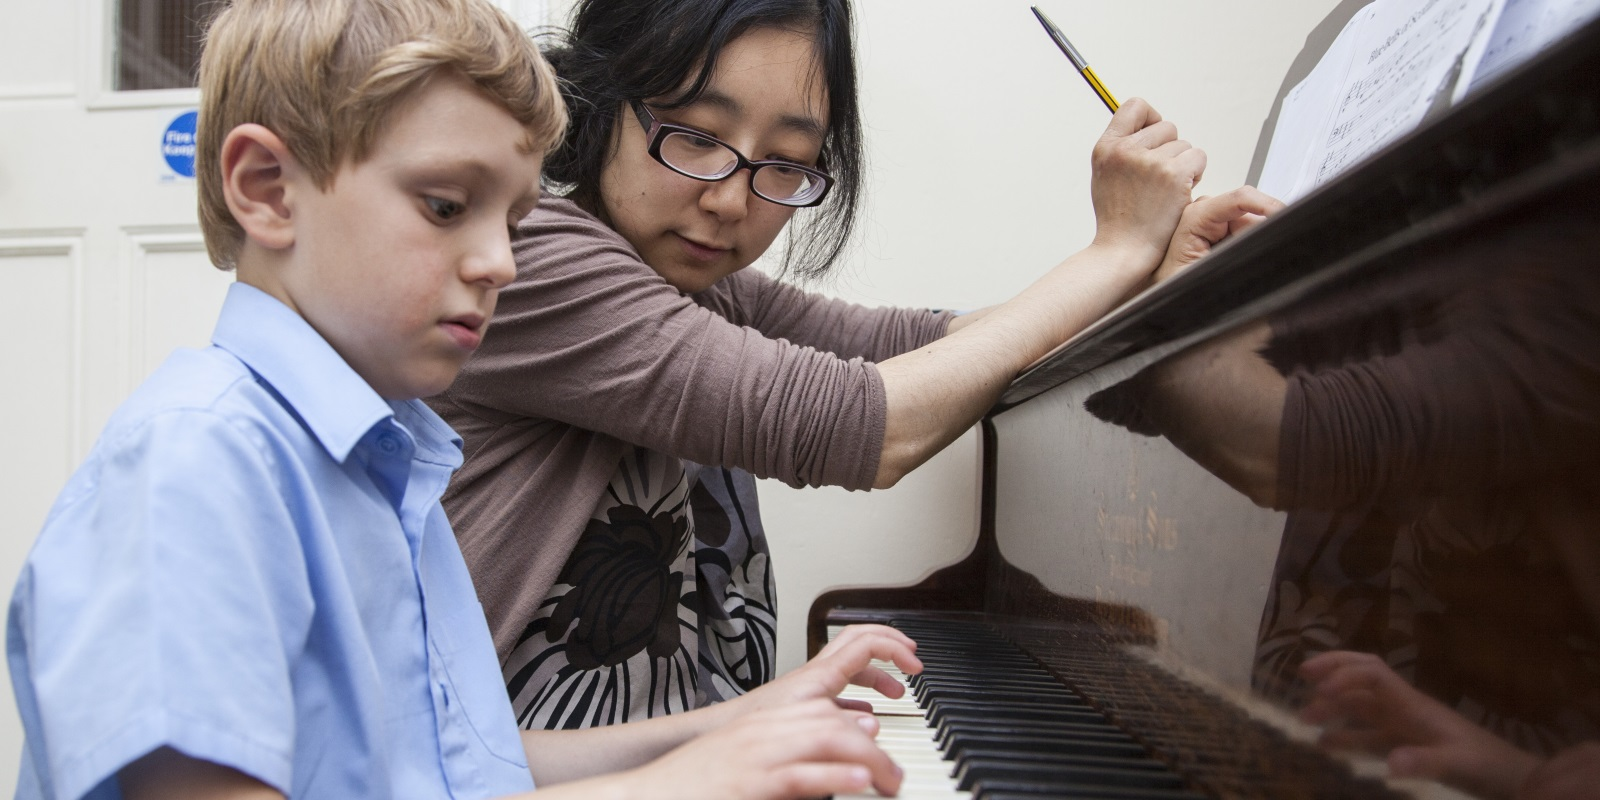 Boy Playing Piano with Maki.jpg